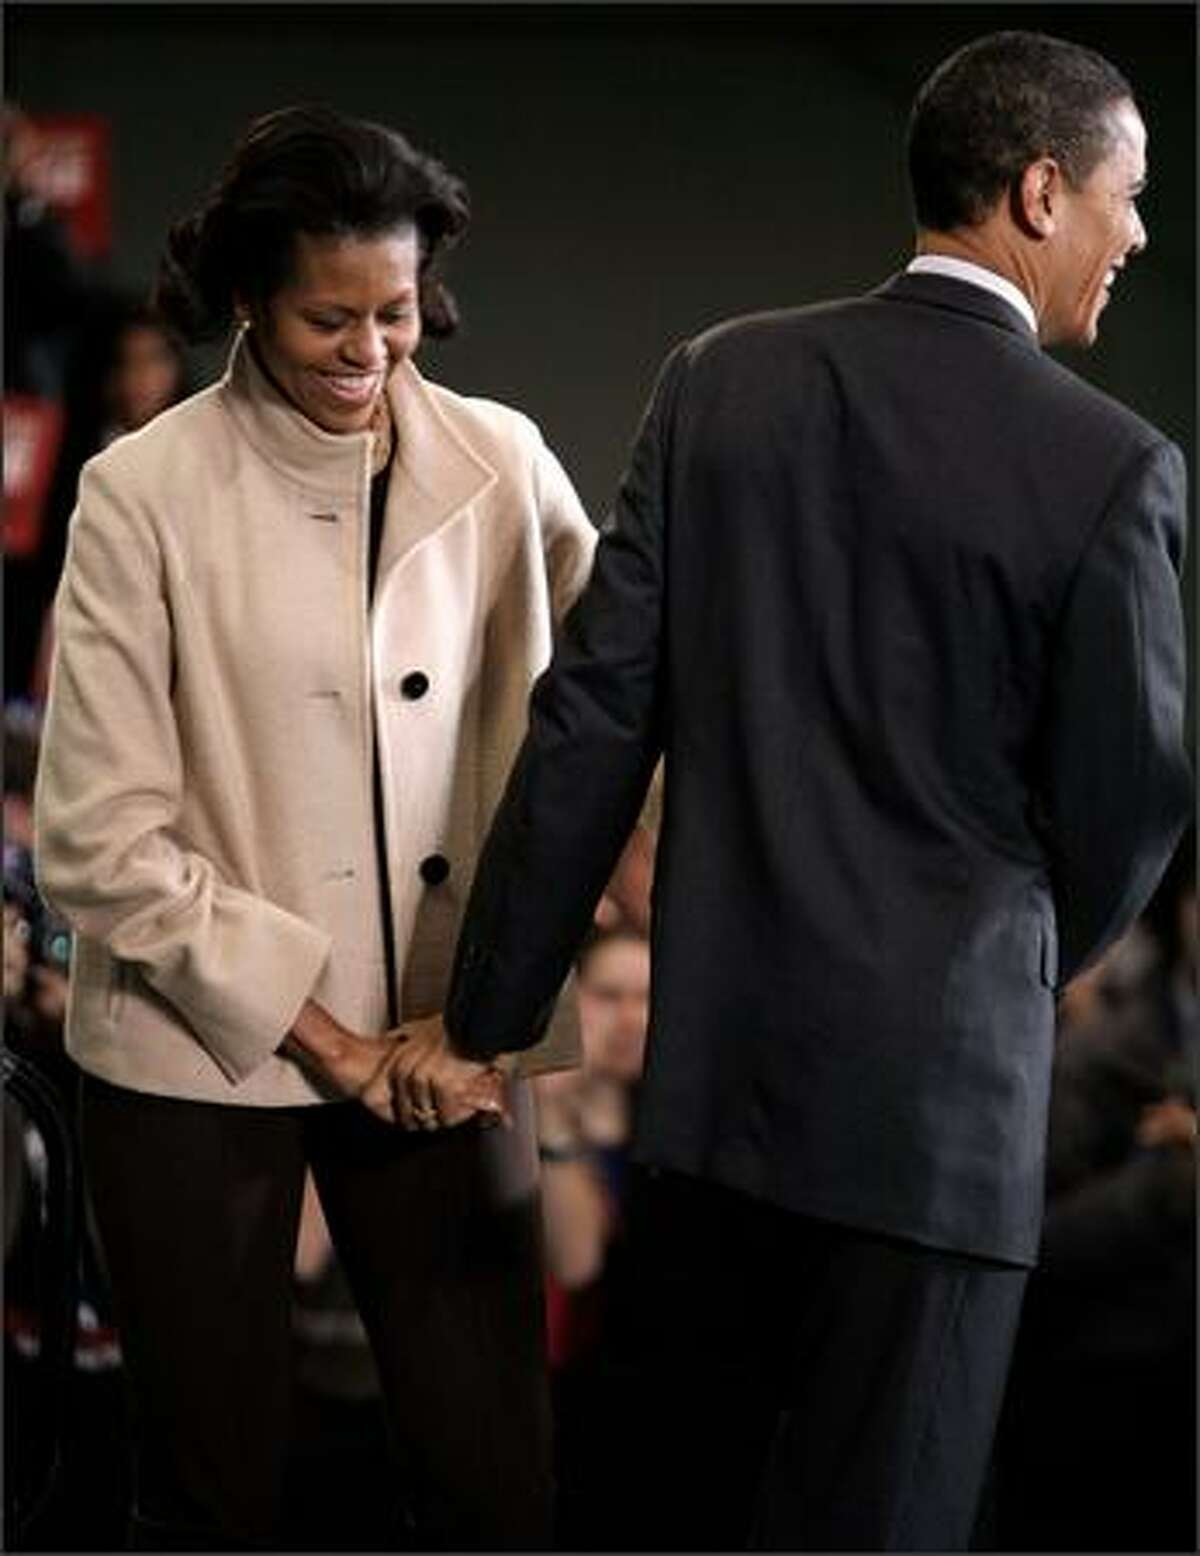 Democratic presidential hopeful Sen. Barack Obama (D-IL) (R) holds hands with his wife Michelle Obama during a rally at the athletics facility at Dartmouth College Jan. 8, 2008 in Hanover, New Hampshire. Polls show Obama leading Sen. Hillary Clinton (D-NY) moving into today's New Hampshire primary.